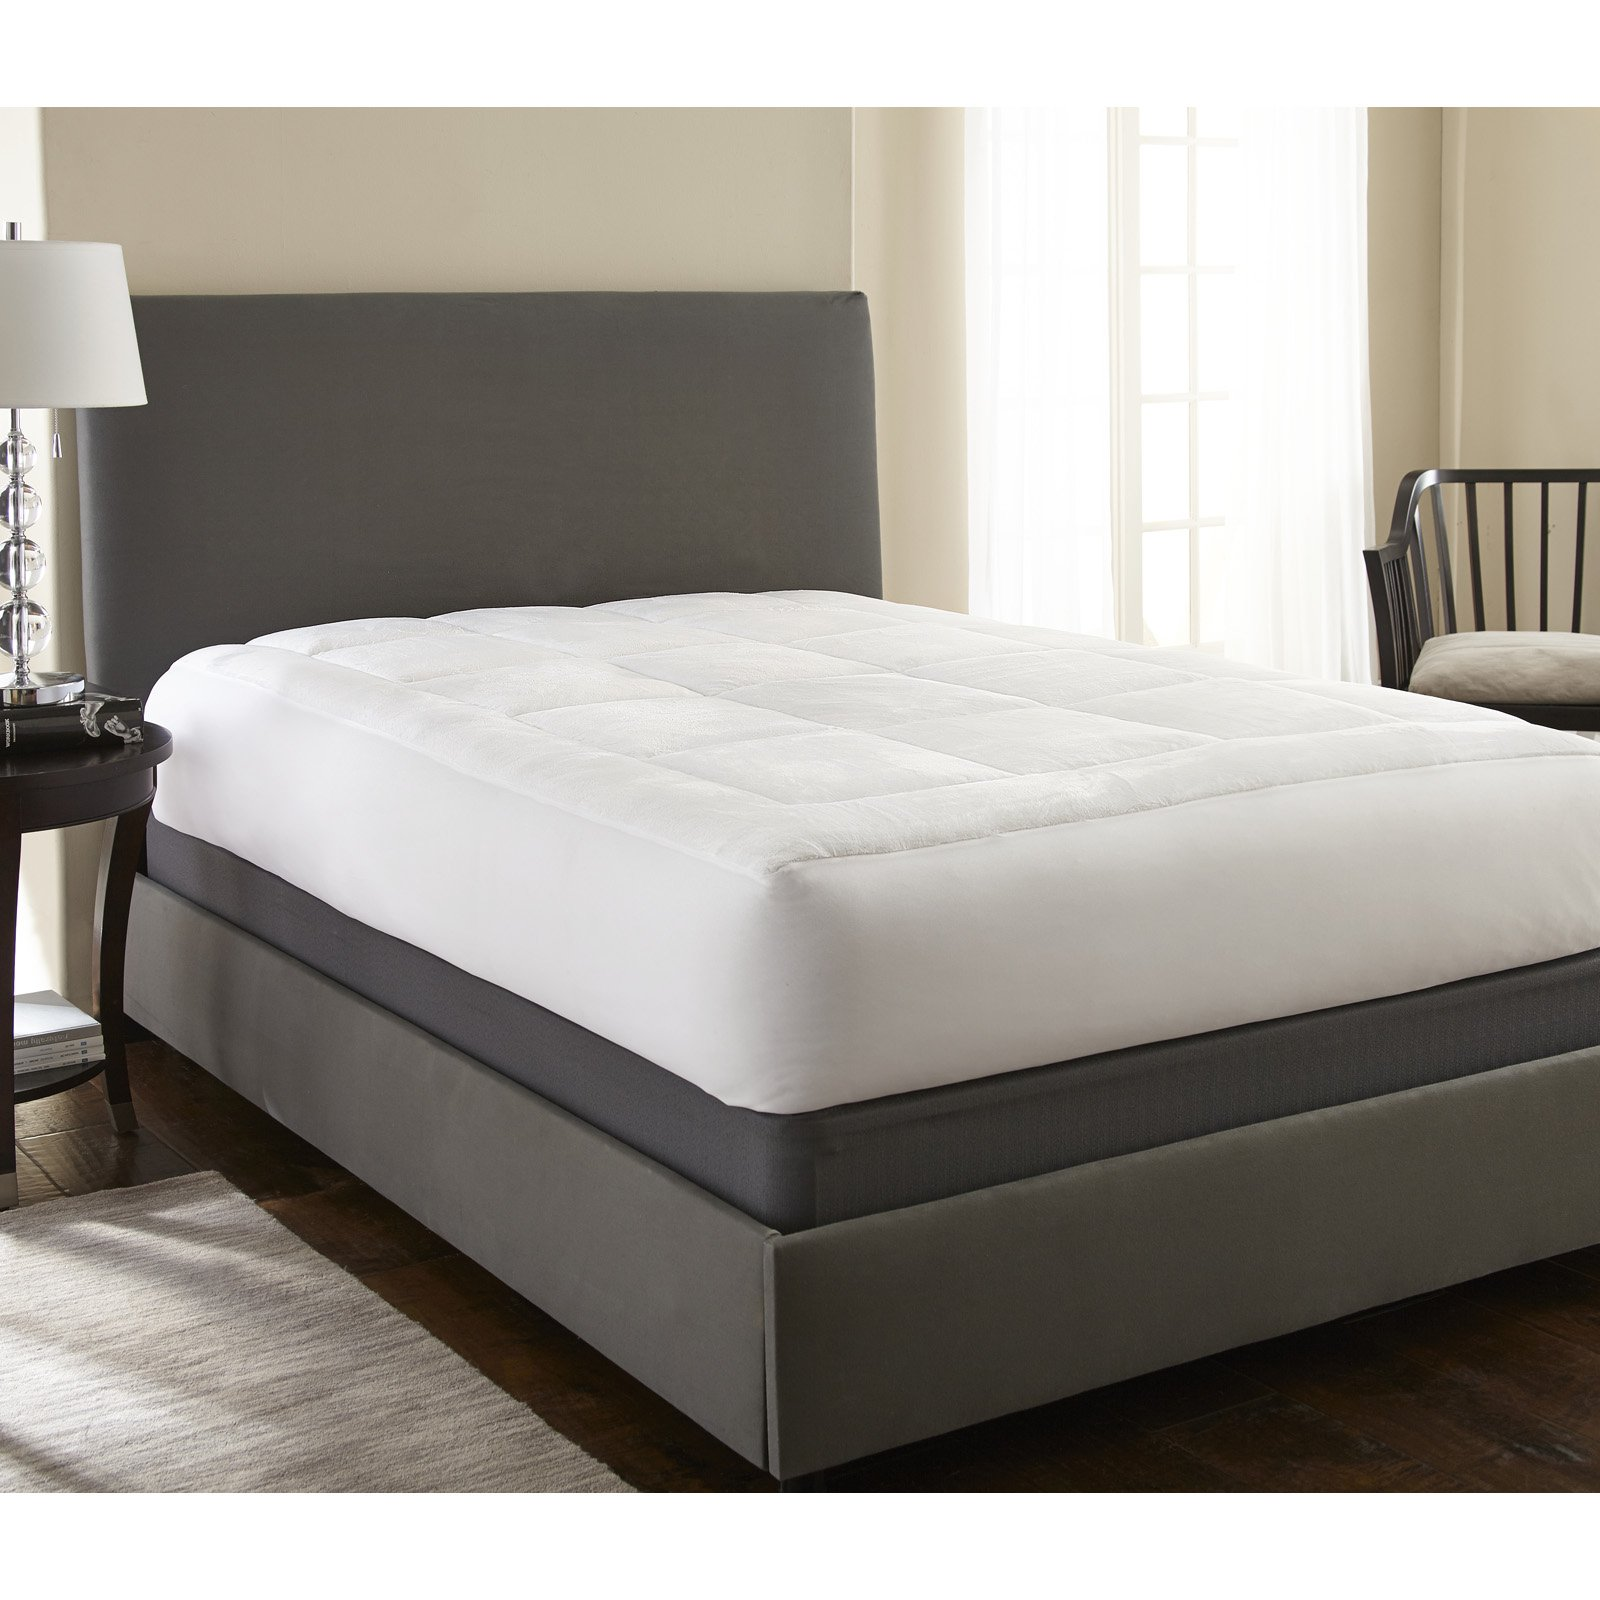 Simply Soft Overfilled Mattress Pad by ienjoy Home